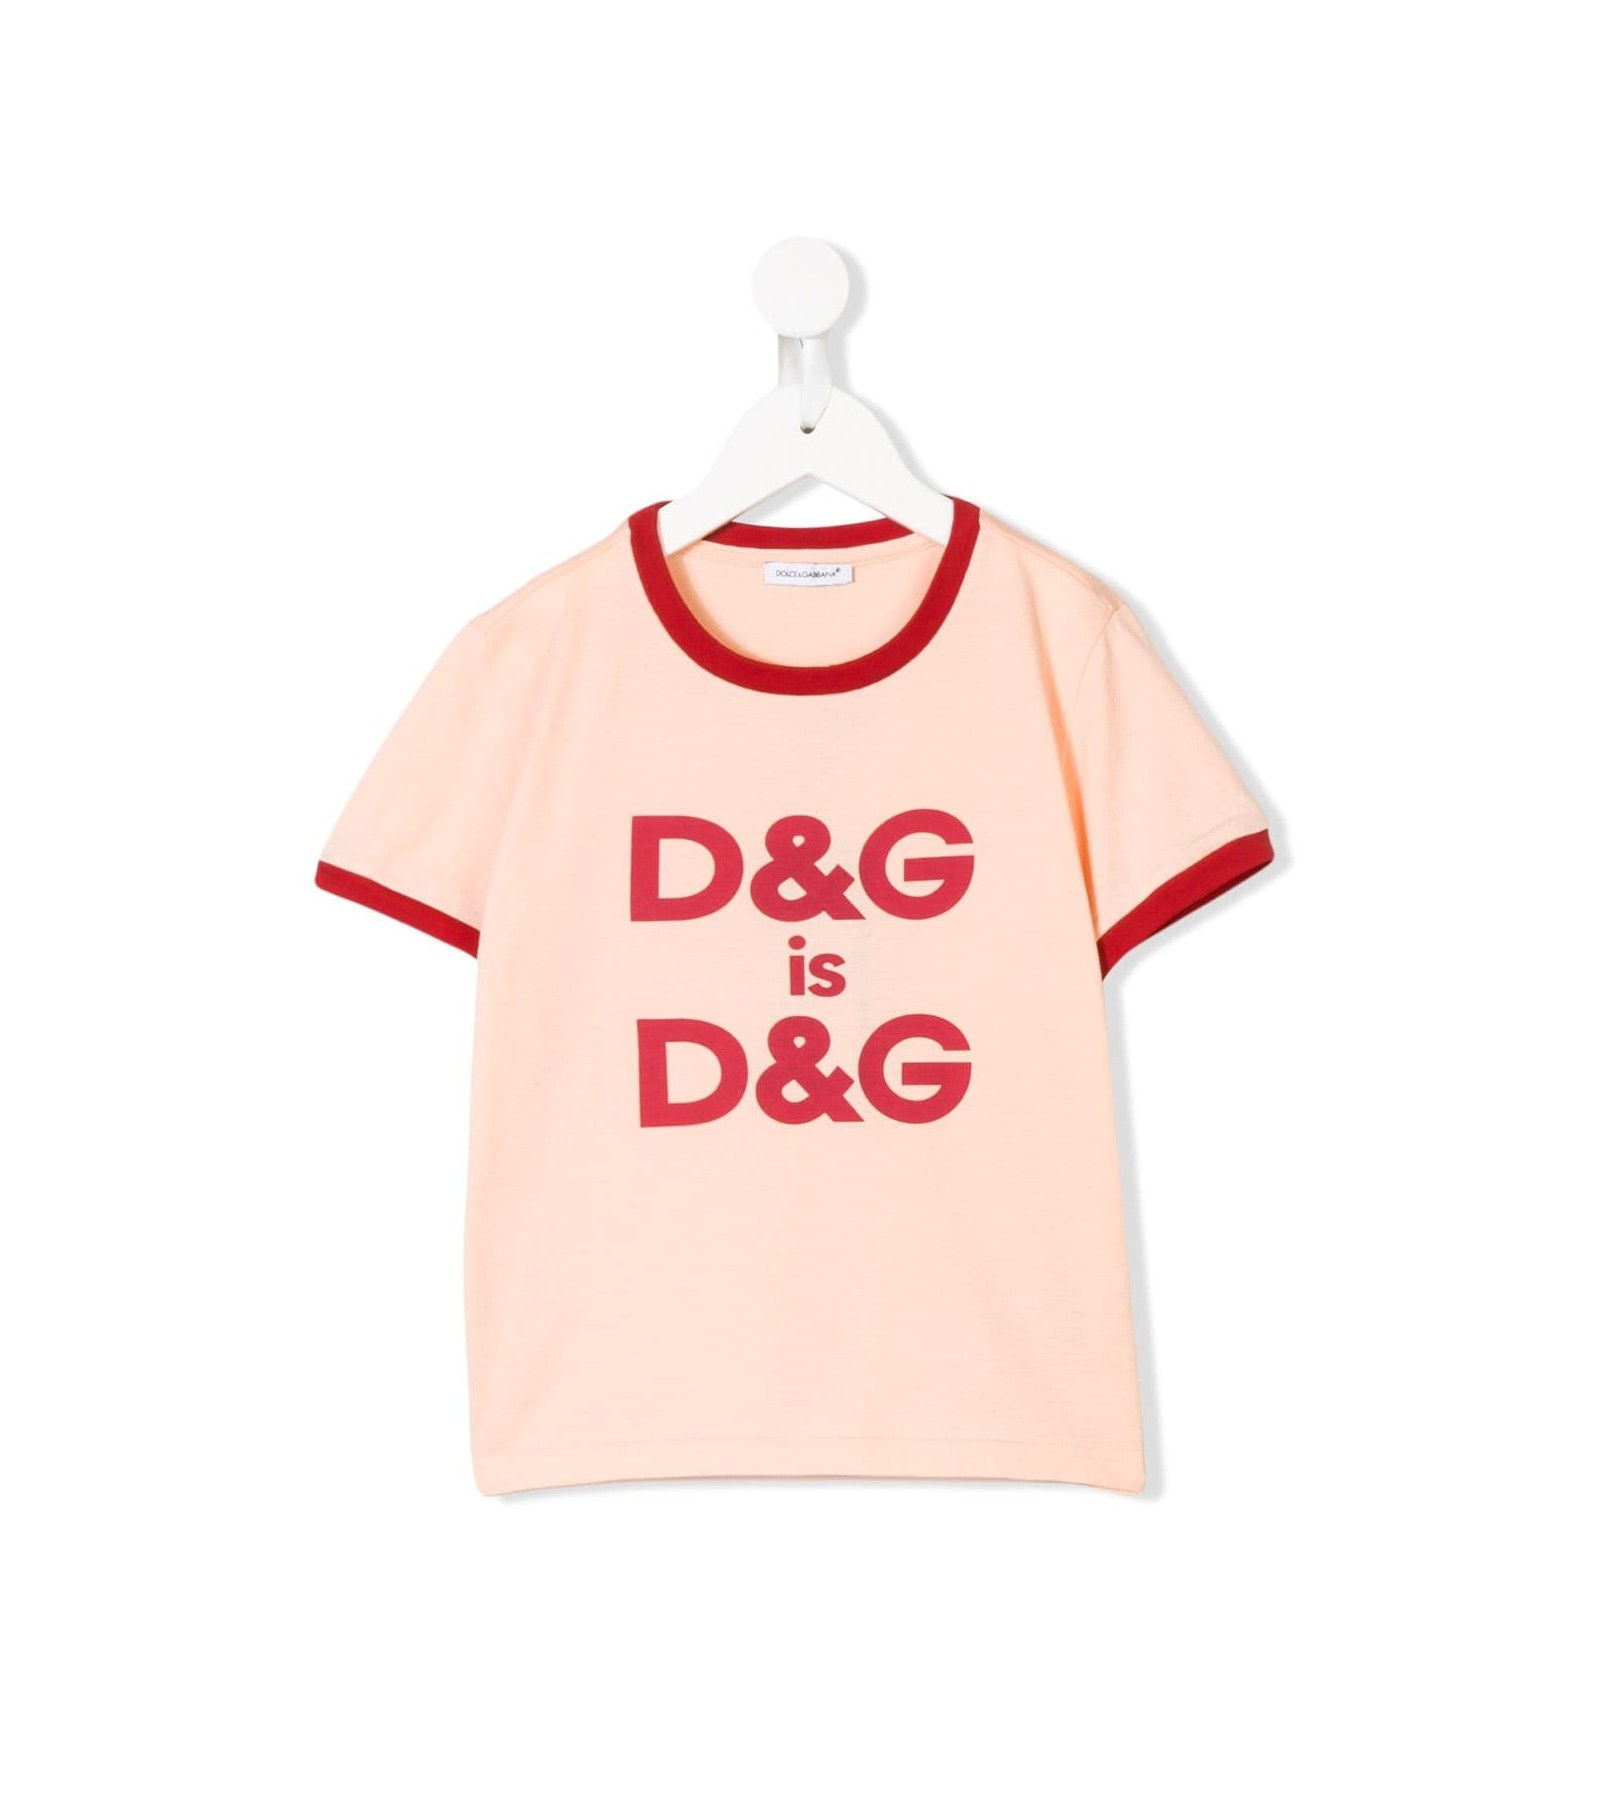 f6676409 T-SHIRT MM GIRO ST.D&G IS D&G - PARISI TAORMINA